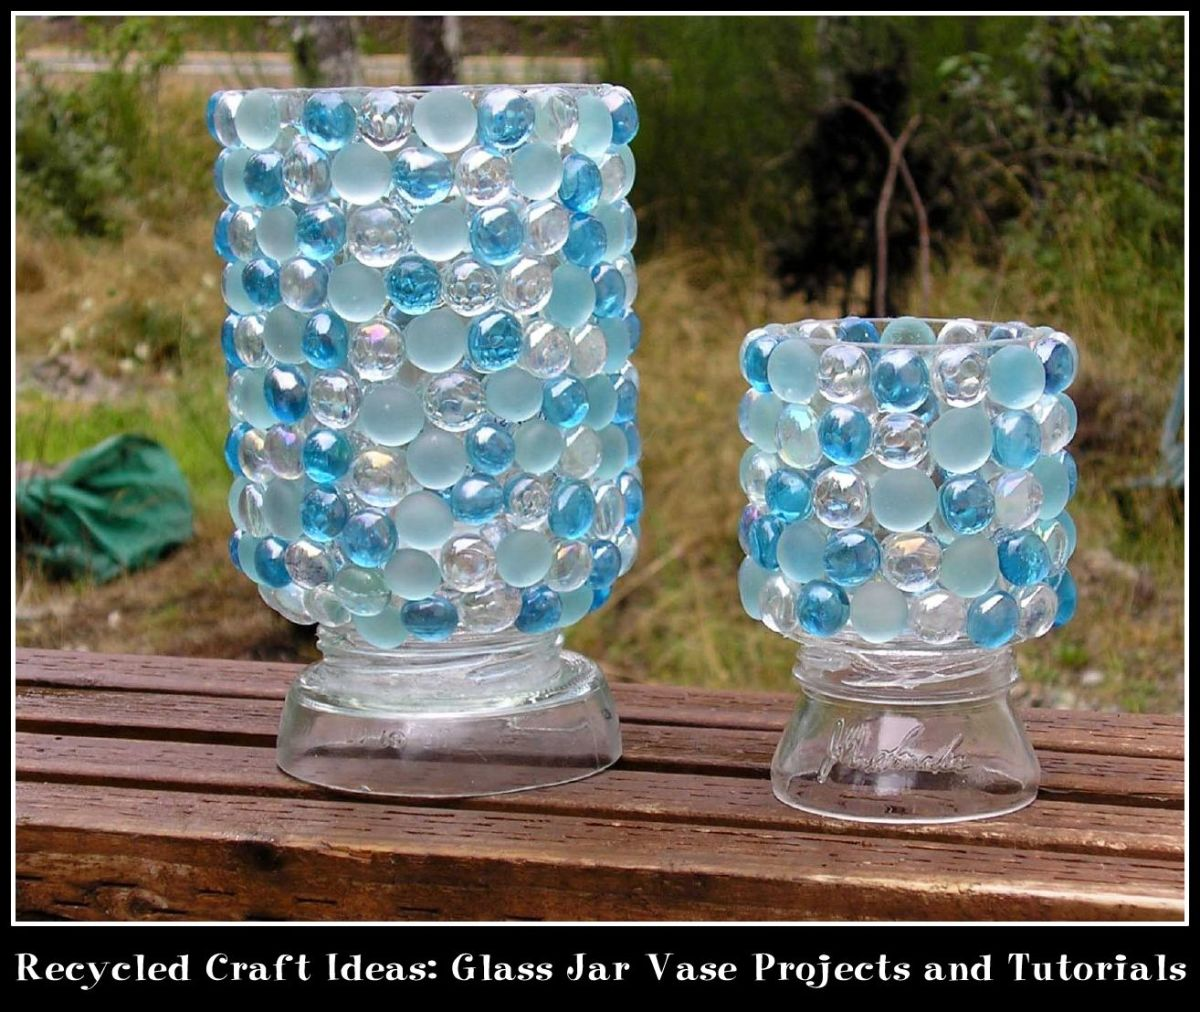 vase craft ideas recycled craft ideas glass jar vase projects and 3179